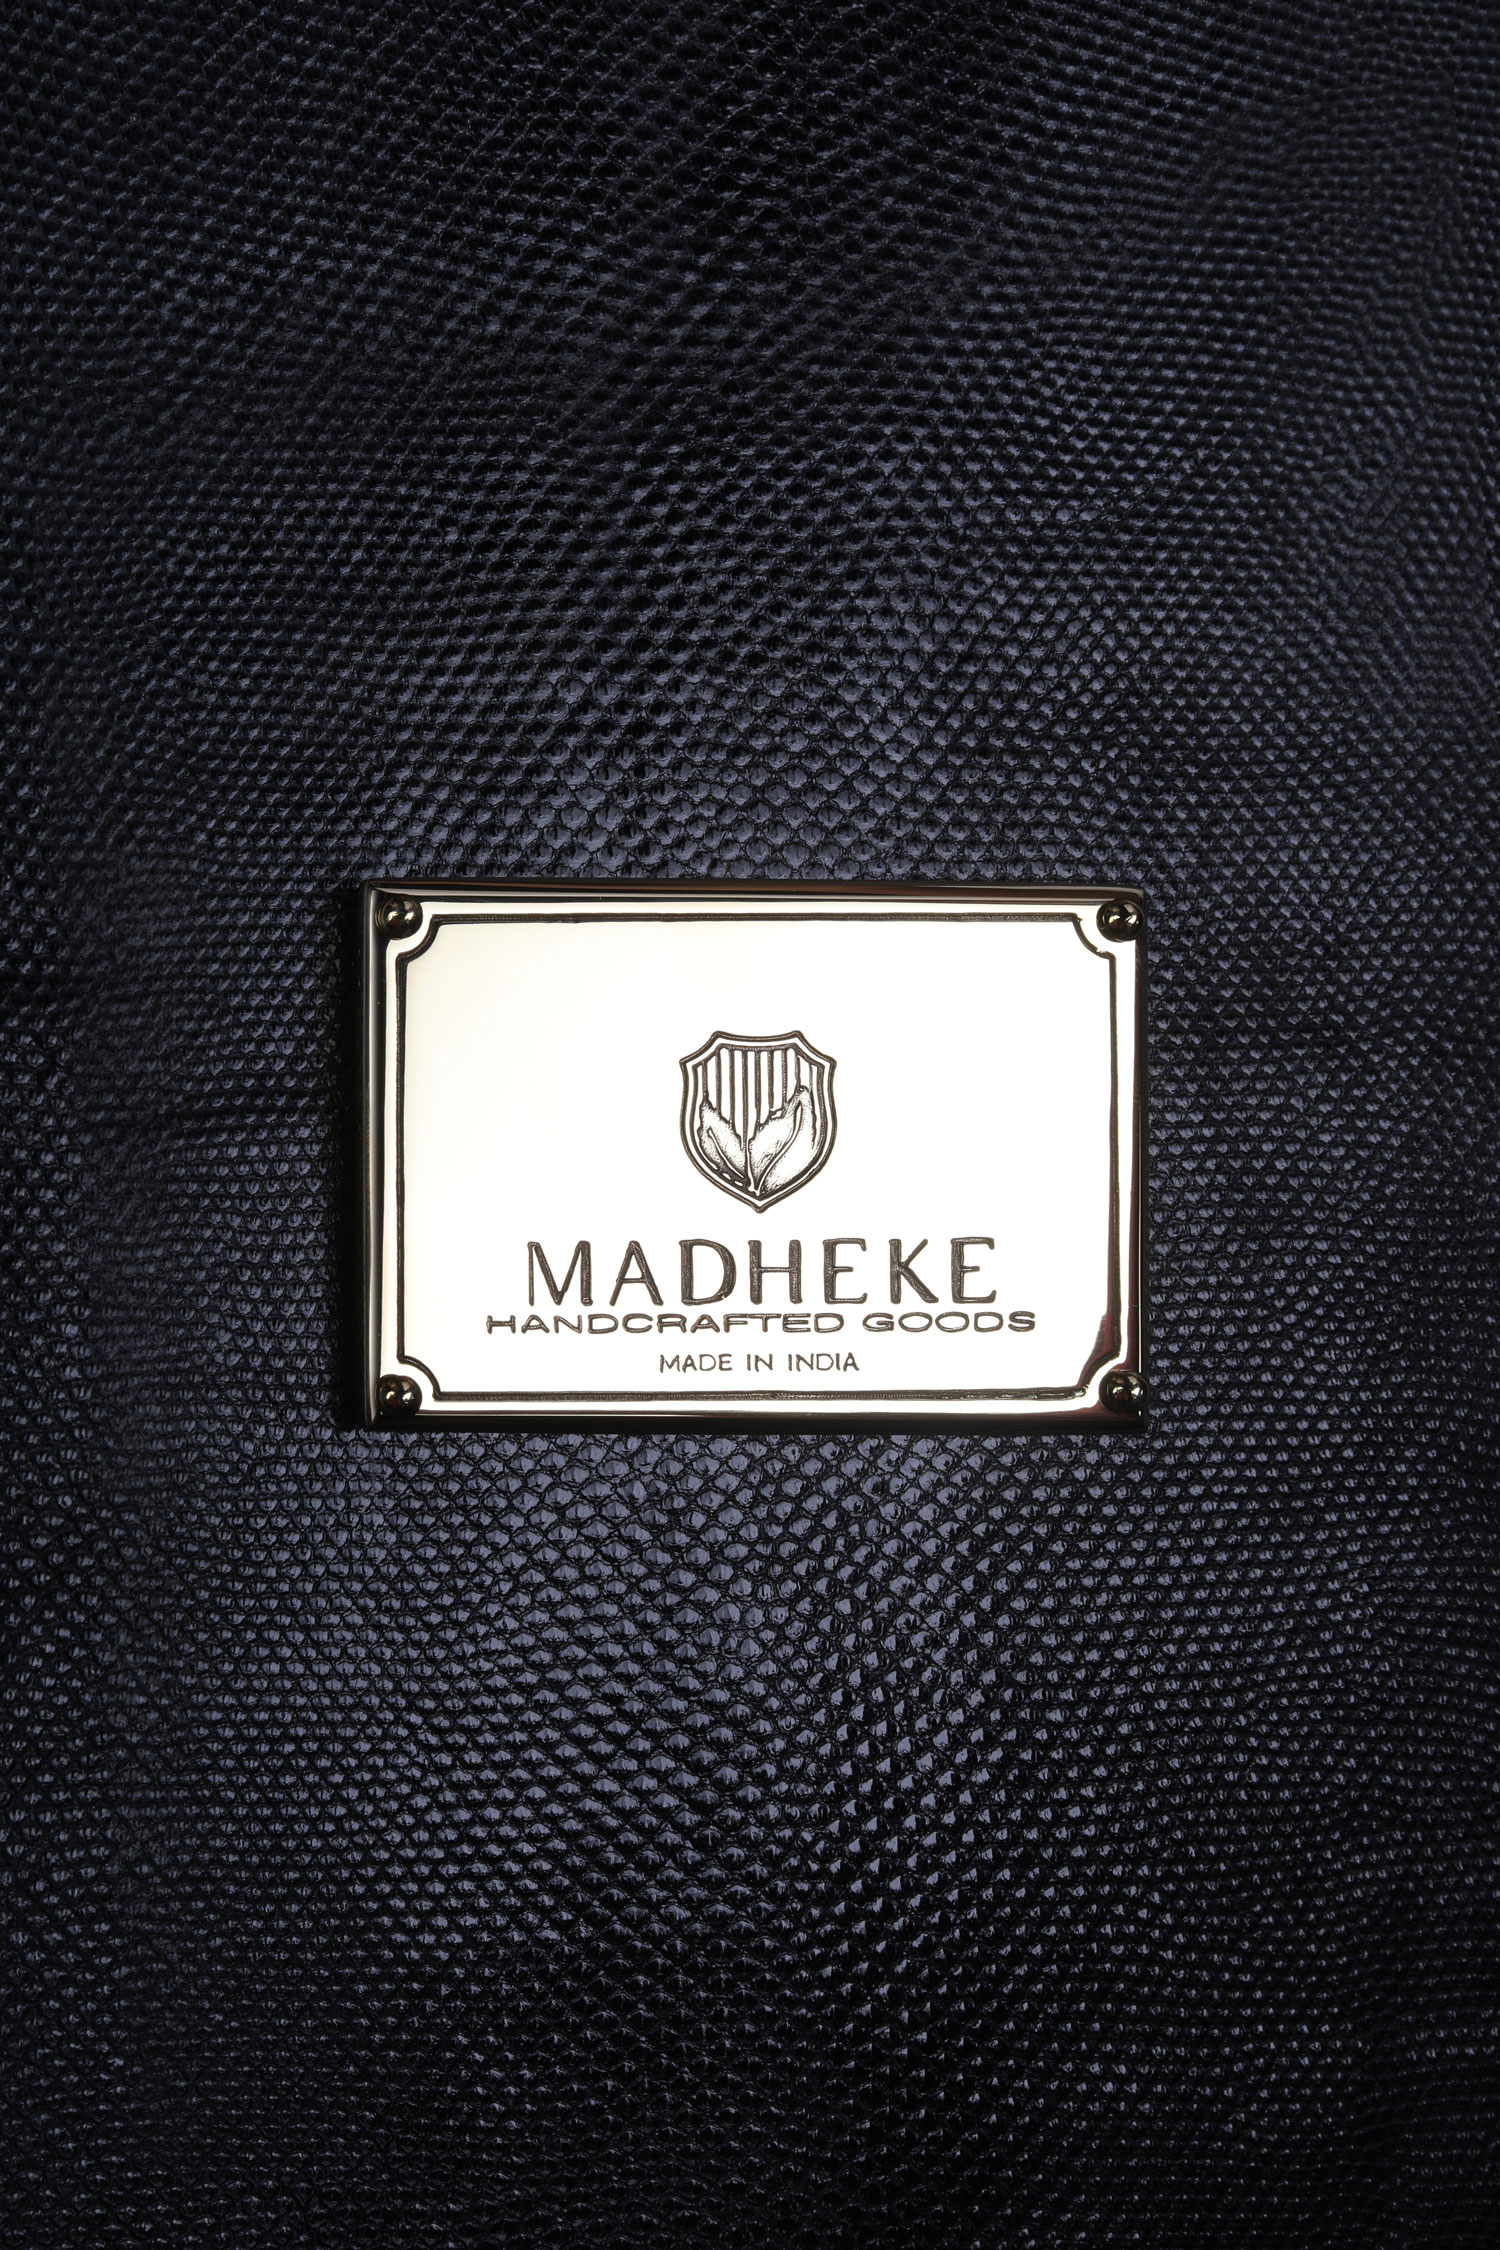 Reflecting the finest in craftsmanship, innovation and heritage, Madheke creates tailored and crafted goods that reflect understated classic elegance, blending tradition and contemporary - antique and modern. - Rare skins, crafted metals and fine veneers seamlessly meet high performance materials and tectonic detailing in a language inspired by old world traditions, for the contemporary world.